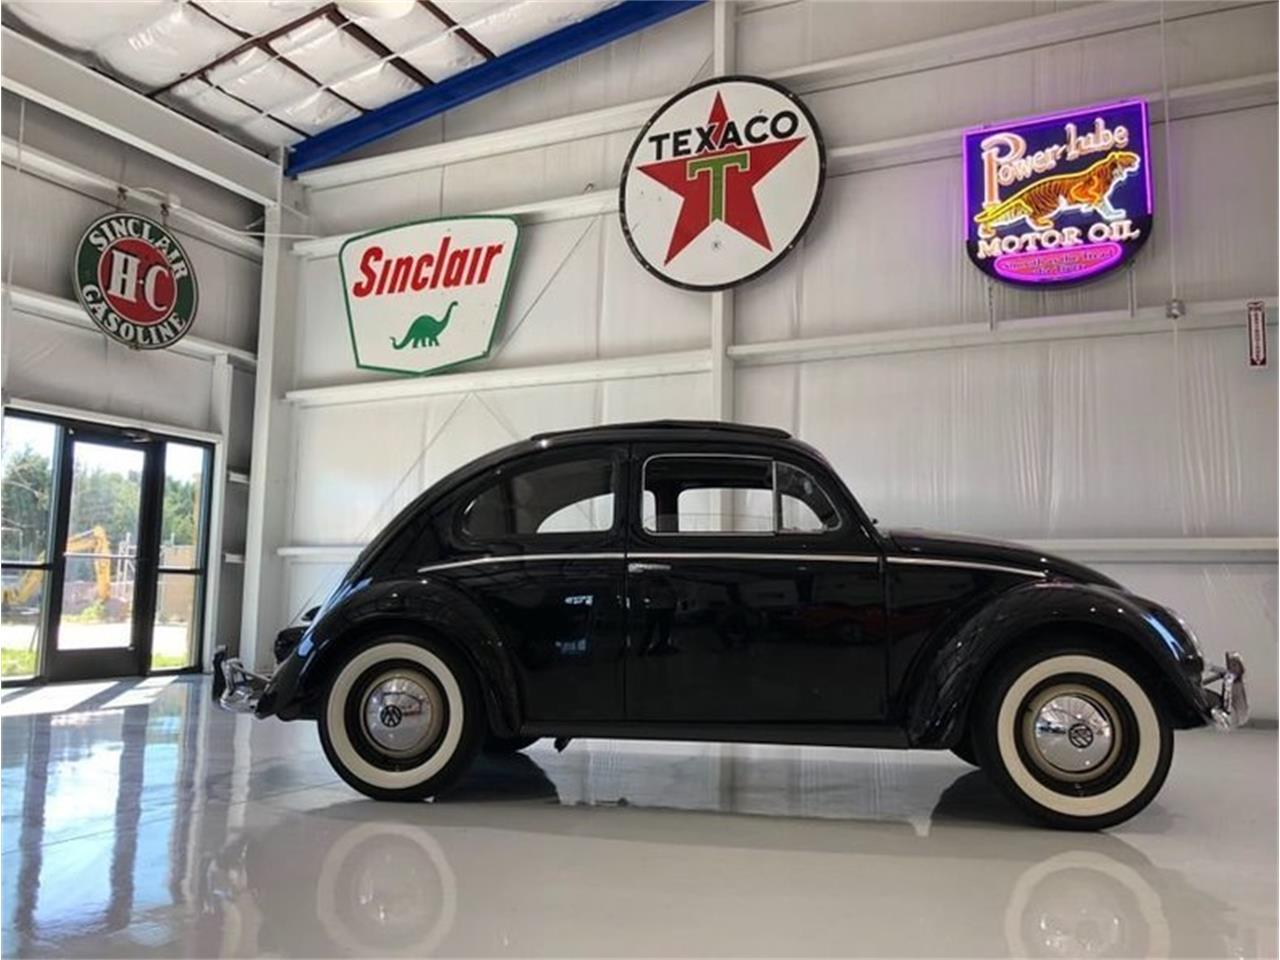 Large Picture of '56 Volkswagen Beetle located in Punta Gorda Florida Auction Vehicle - NKI3